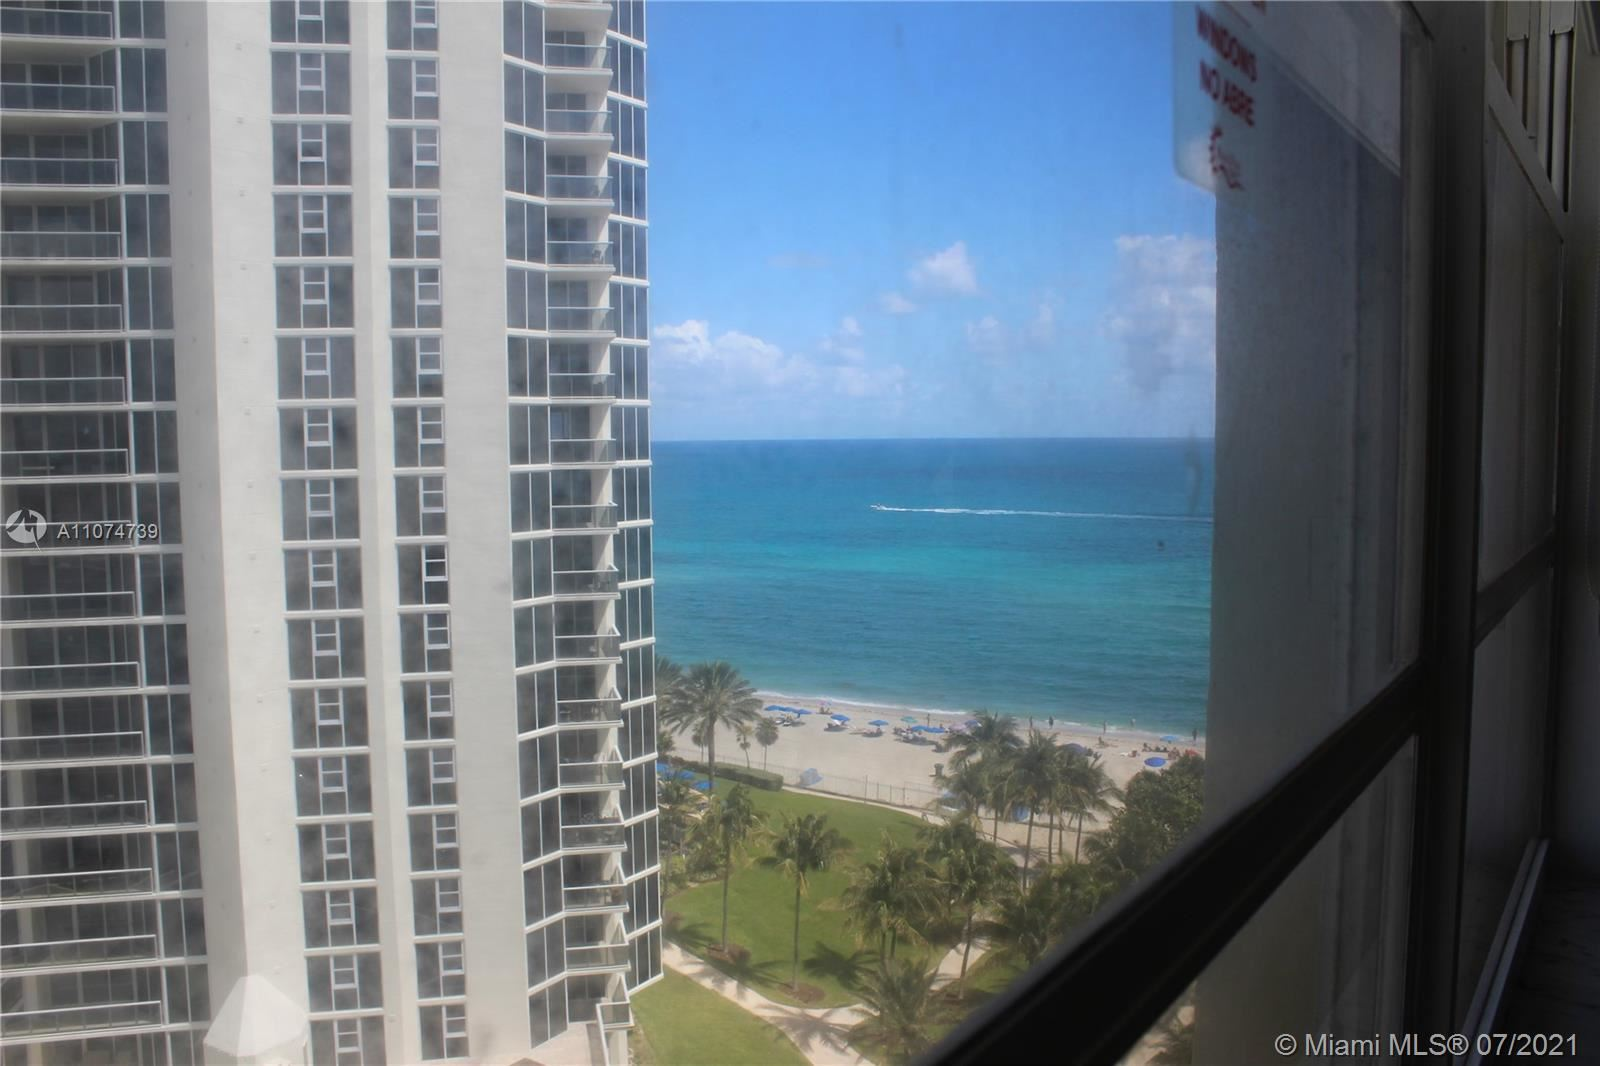 19201 Collins Ave #1027, Sunny Isles, FL 33160 - #: A11074739